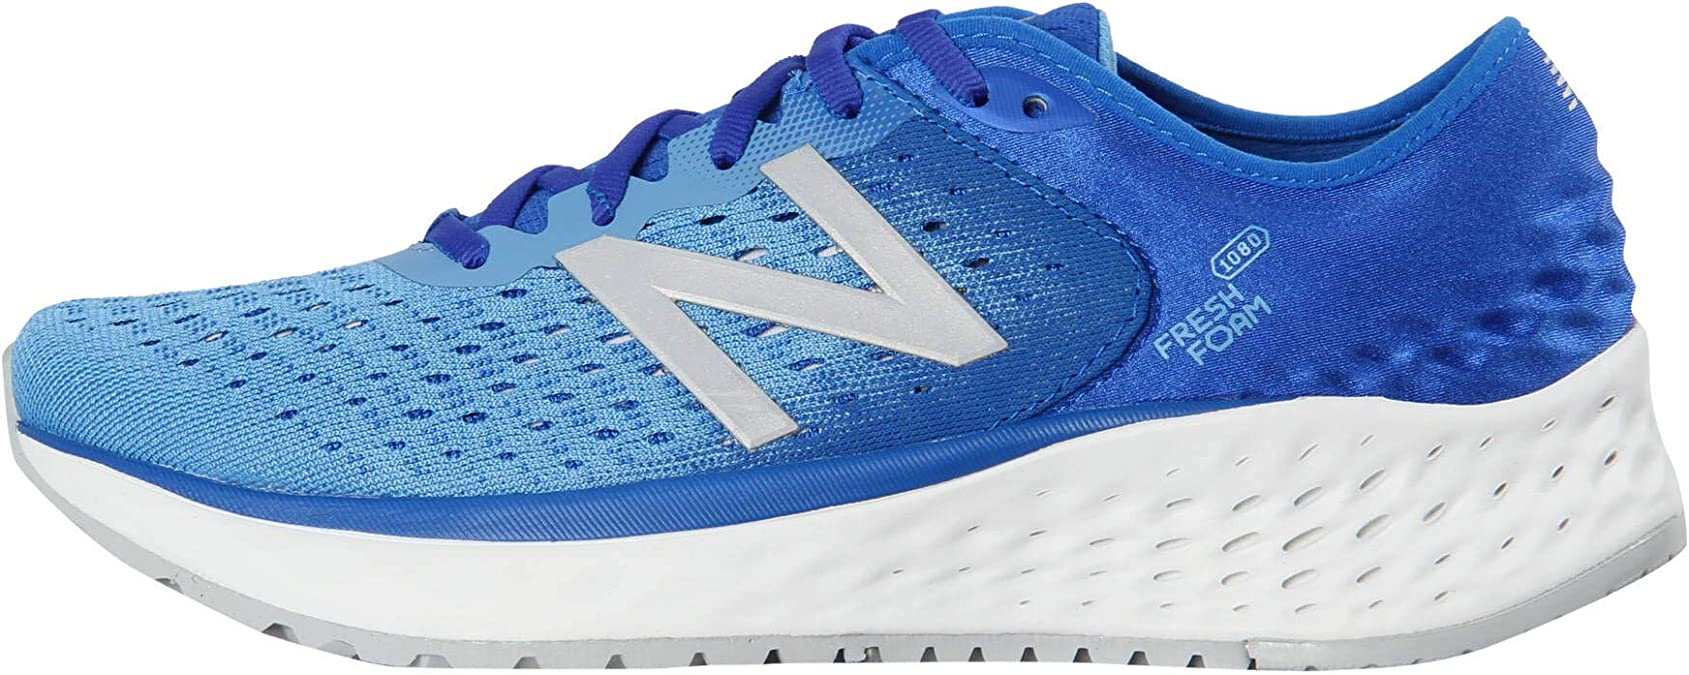 New Balance Chaussures Femme 1080: Amazon.es: Zapatos y complementos